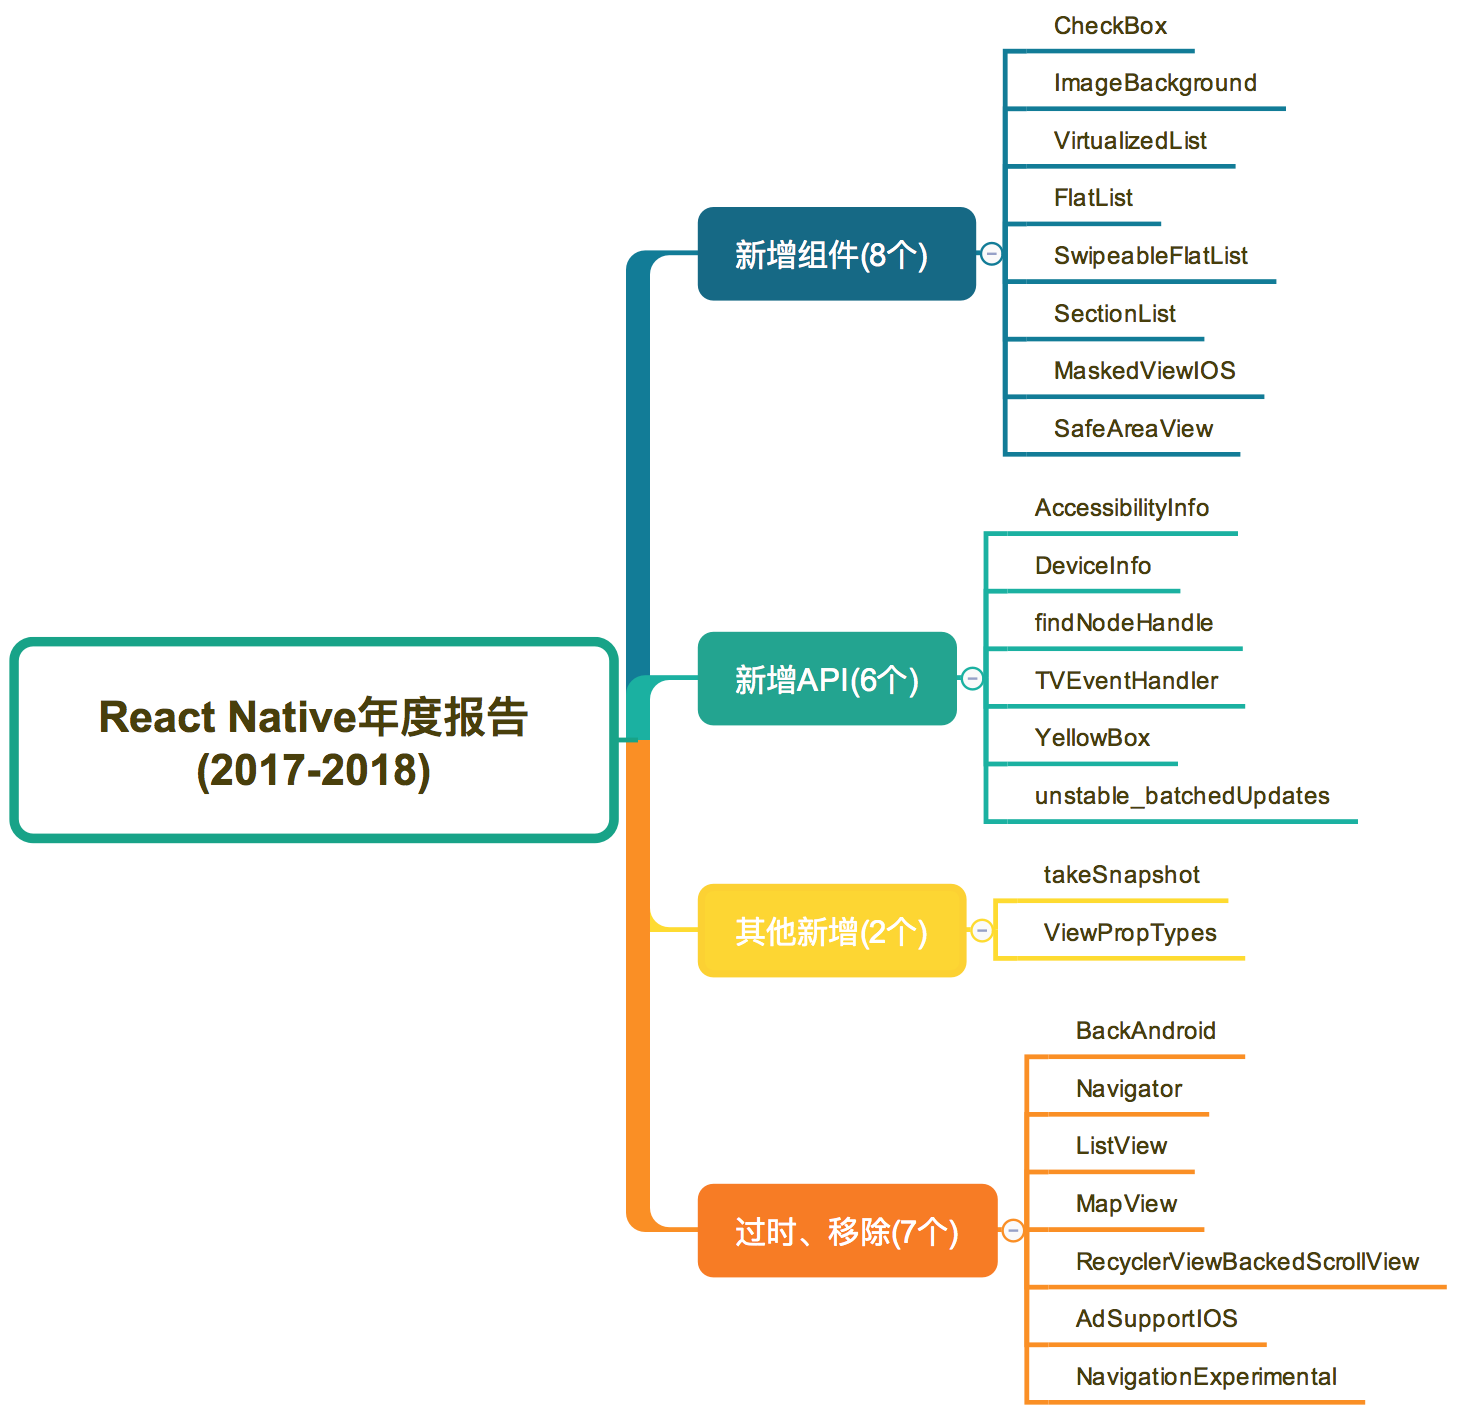 React Native年度报告(2017-2018)